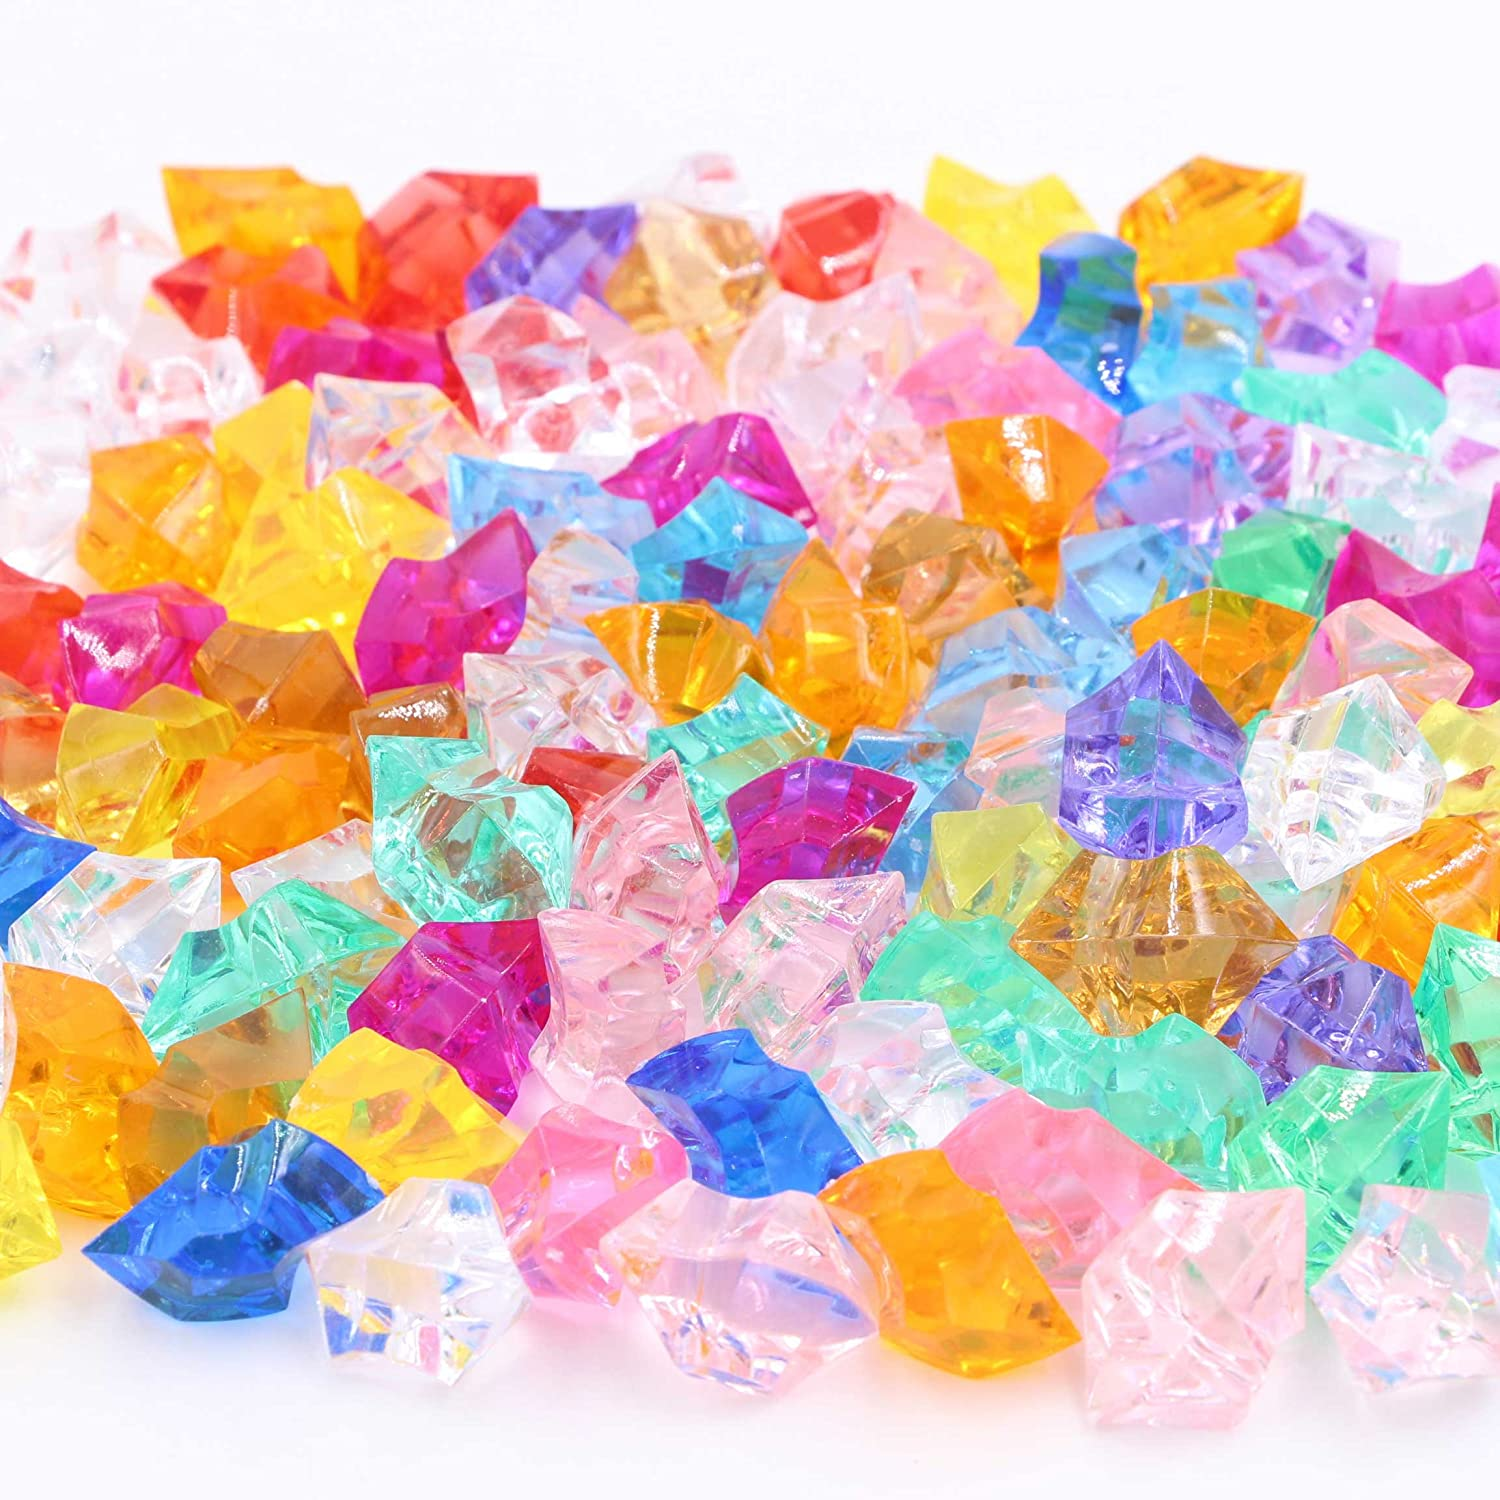 LeBeila Acrylic Gems Stones Colorful Ice Rocks Jewels Faux Decorative Crystal Gemstones for Vase Filler, Wedding Decoration, Party Event, Table Scatter, Aquarium Decor (100pcs, Multi-Color)